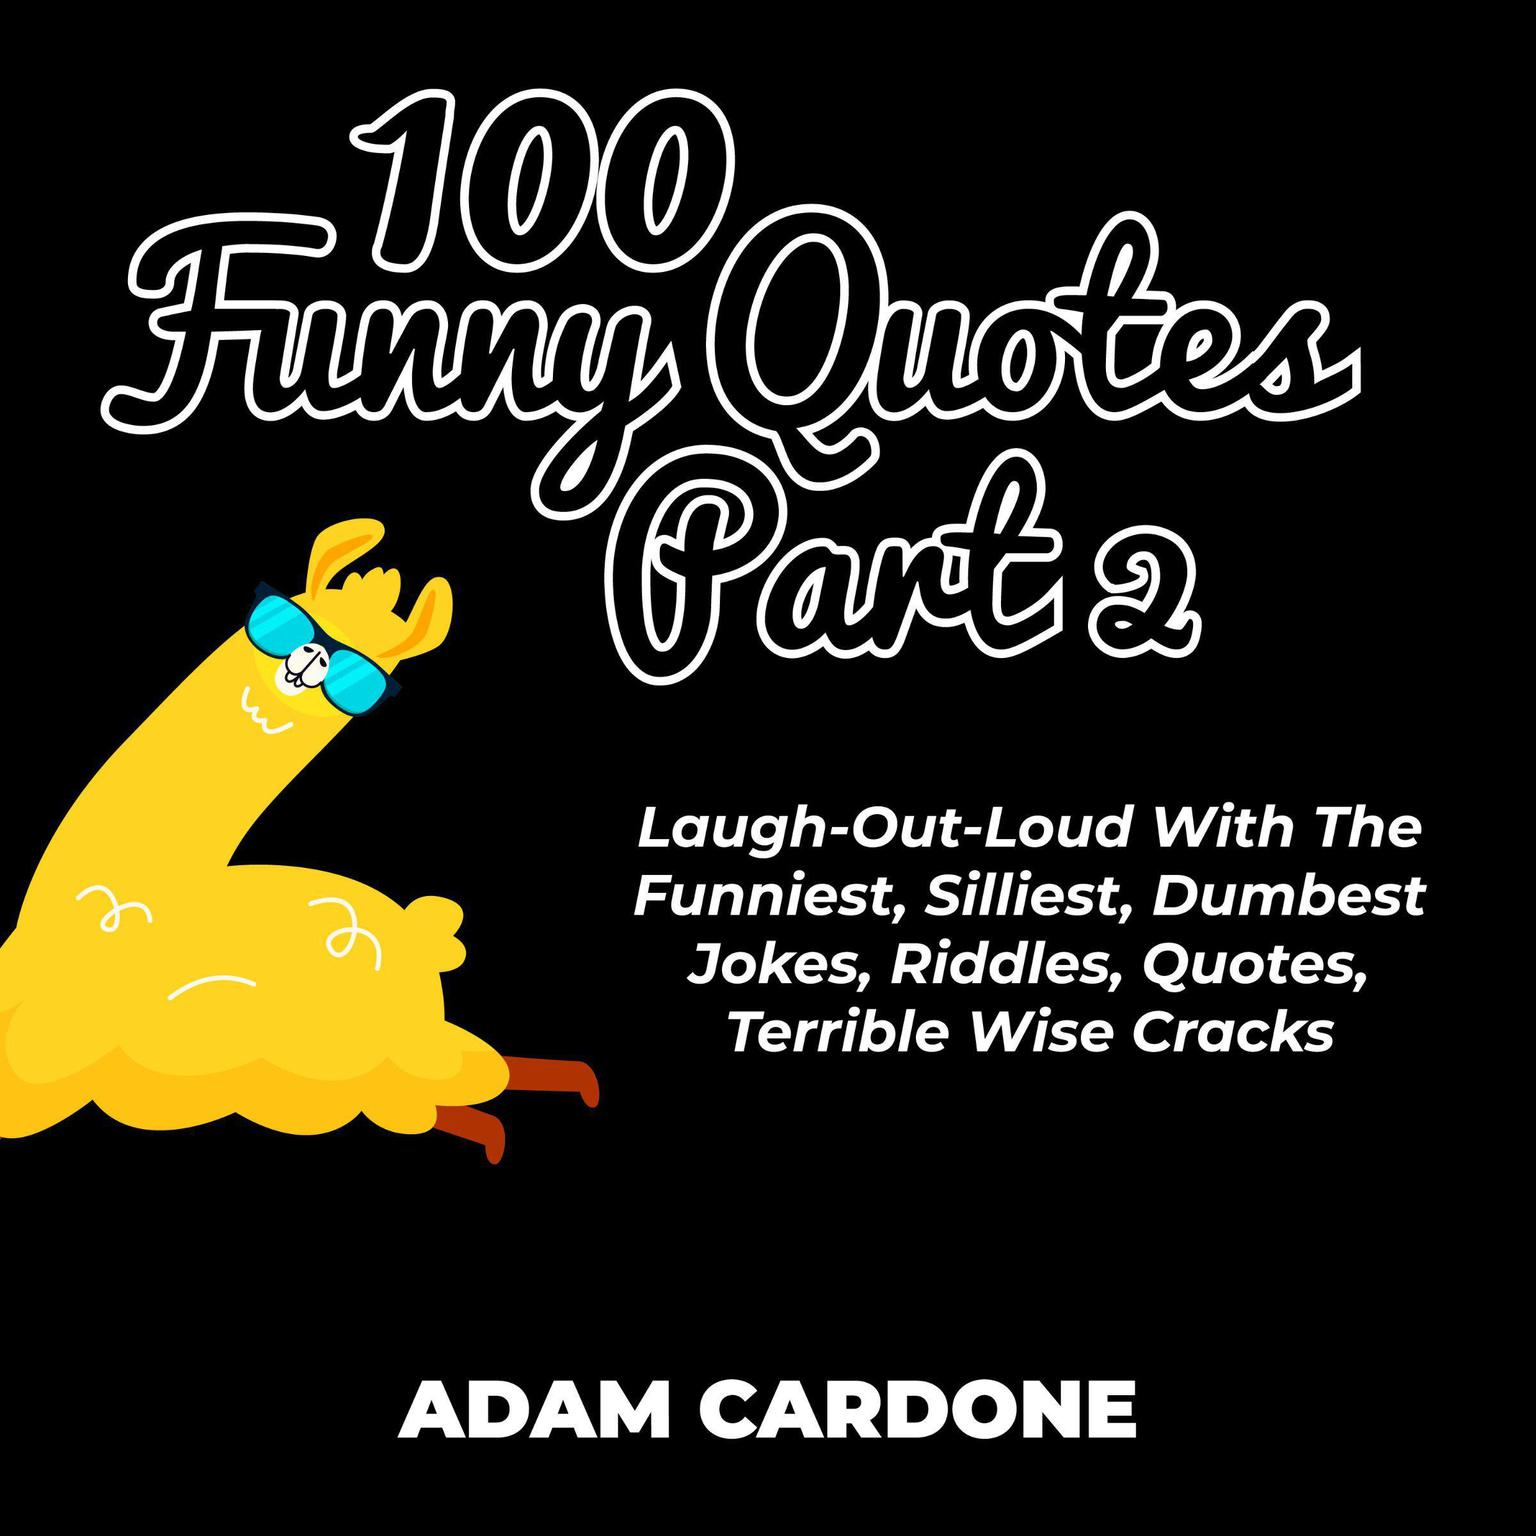 Printable 100 Funny Quotes Part 2: Laugh-Out-Loud With The Funniest, Silliest, Dumbest Jokes, Riddles, Quotes, Terrible Wise Cracks Audiobook Cover Art